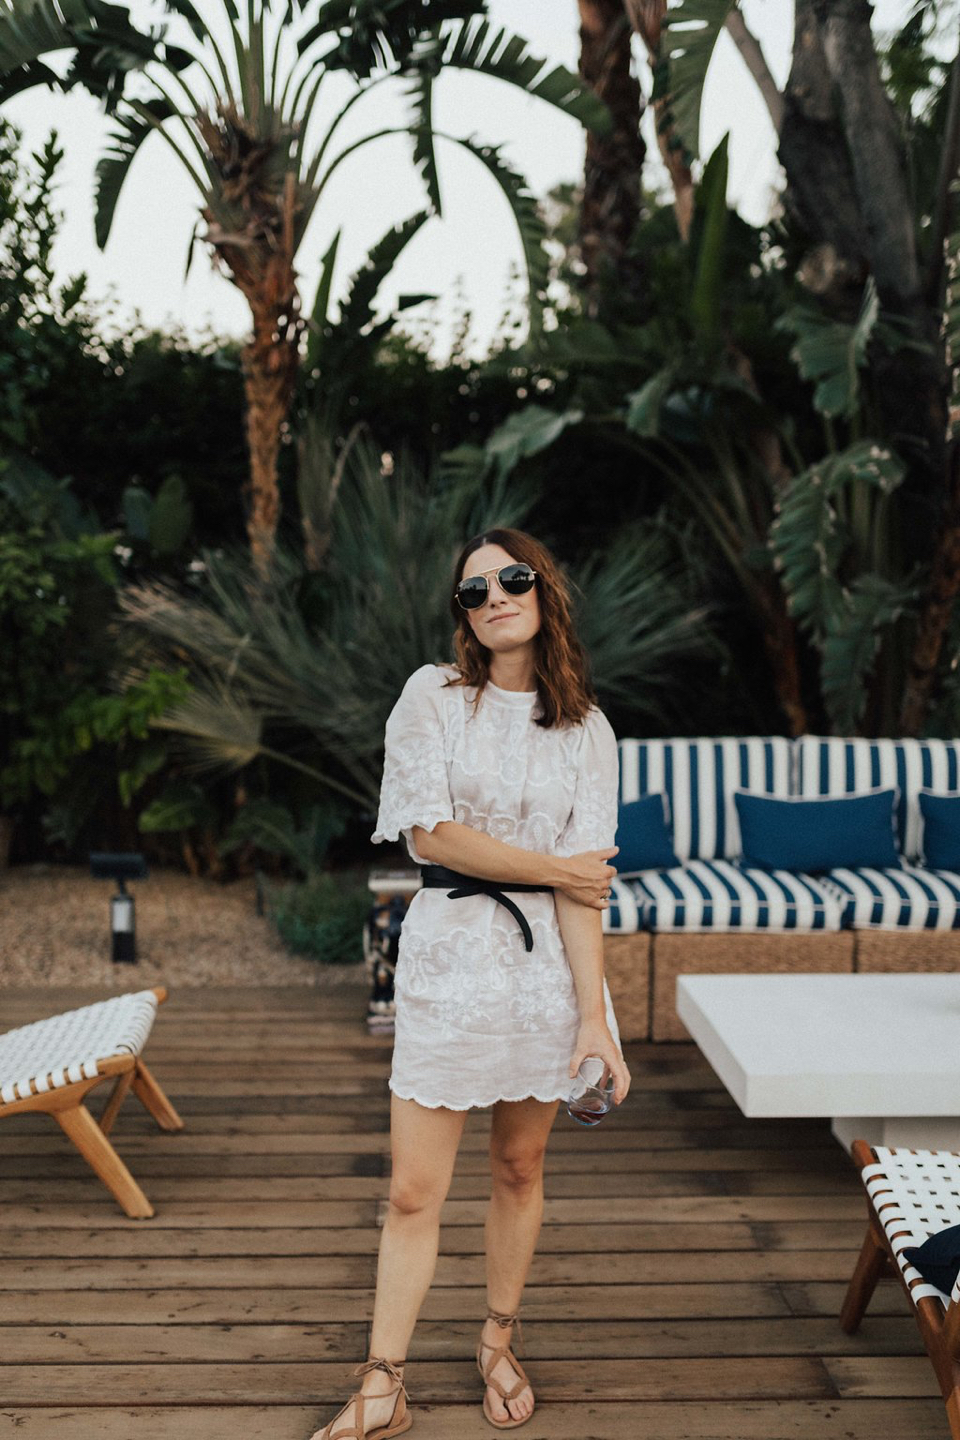 How to Update Last Summer's Little White Dress